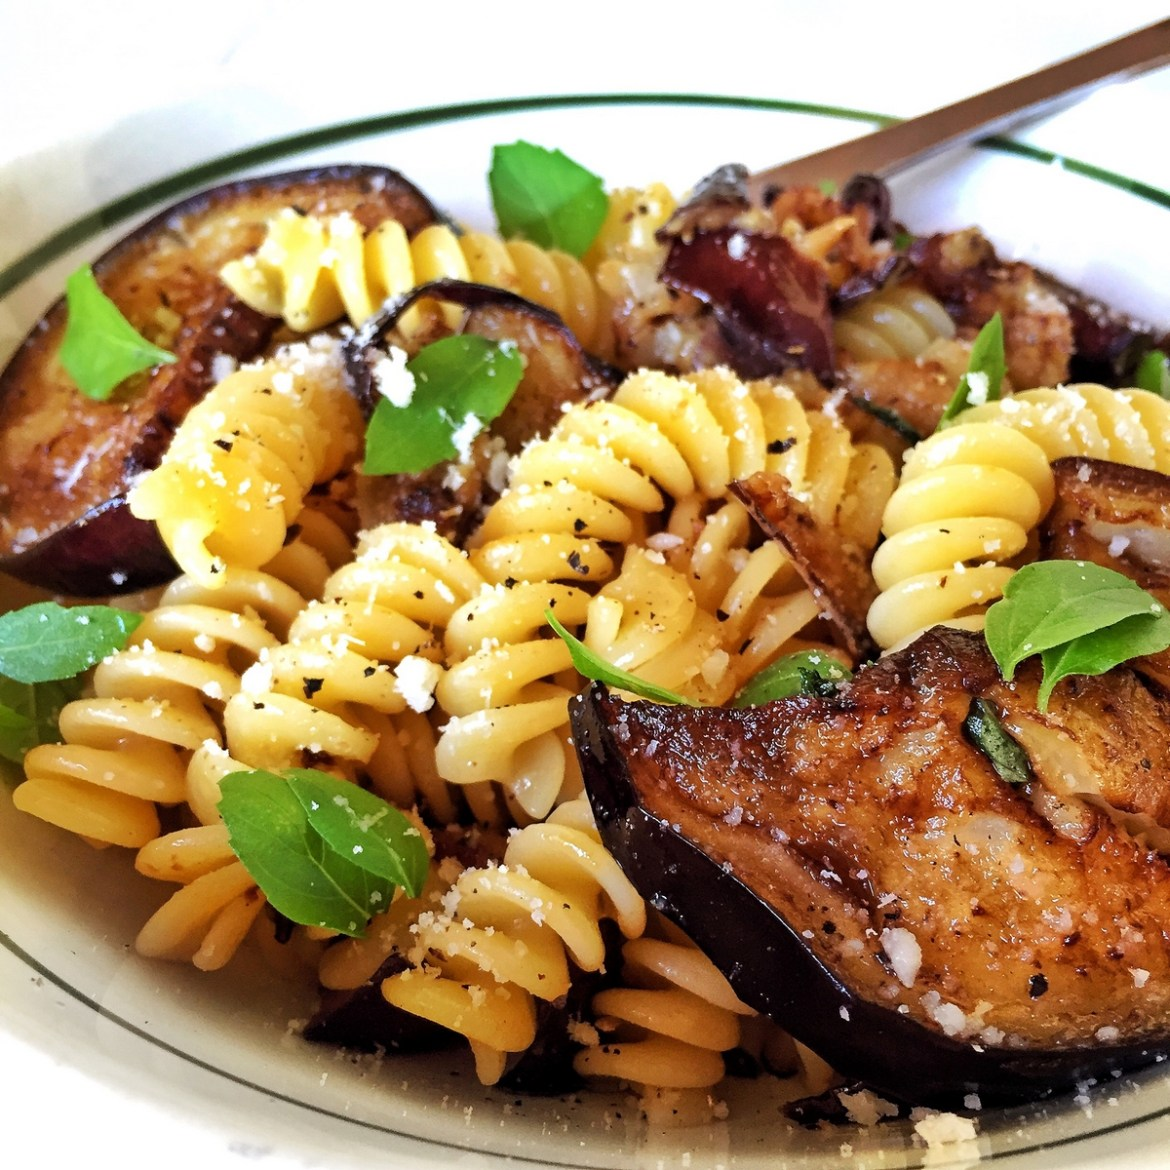 Pasta with eggplant in white